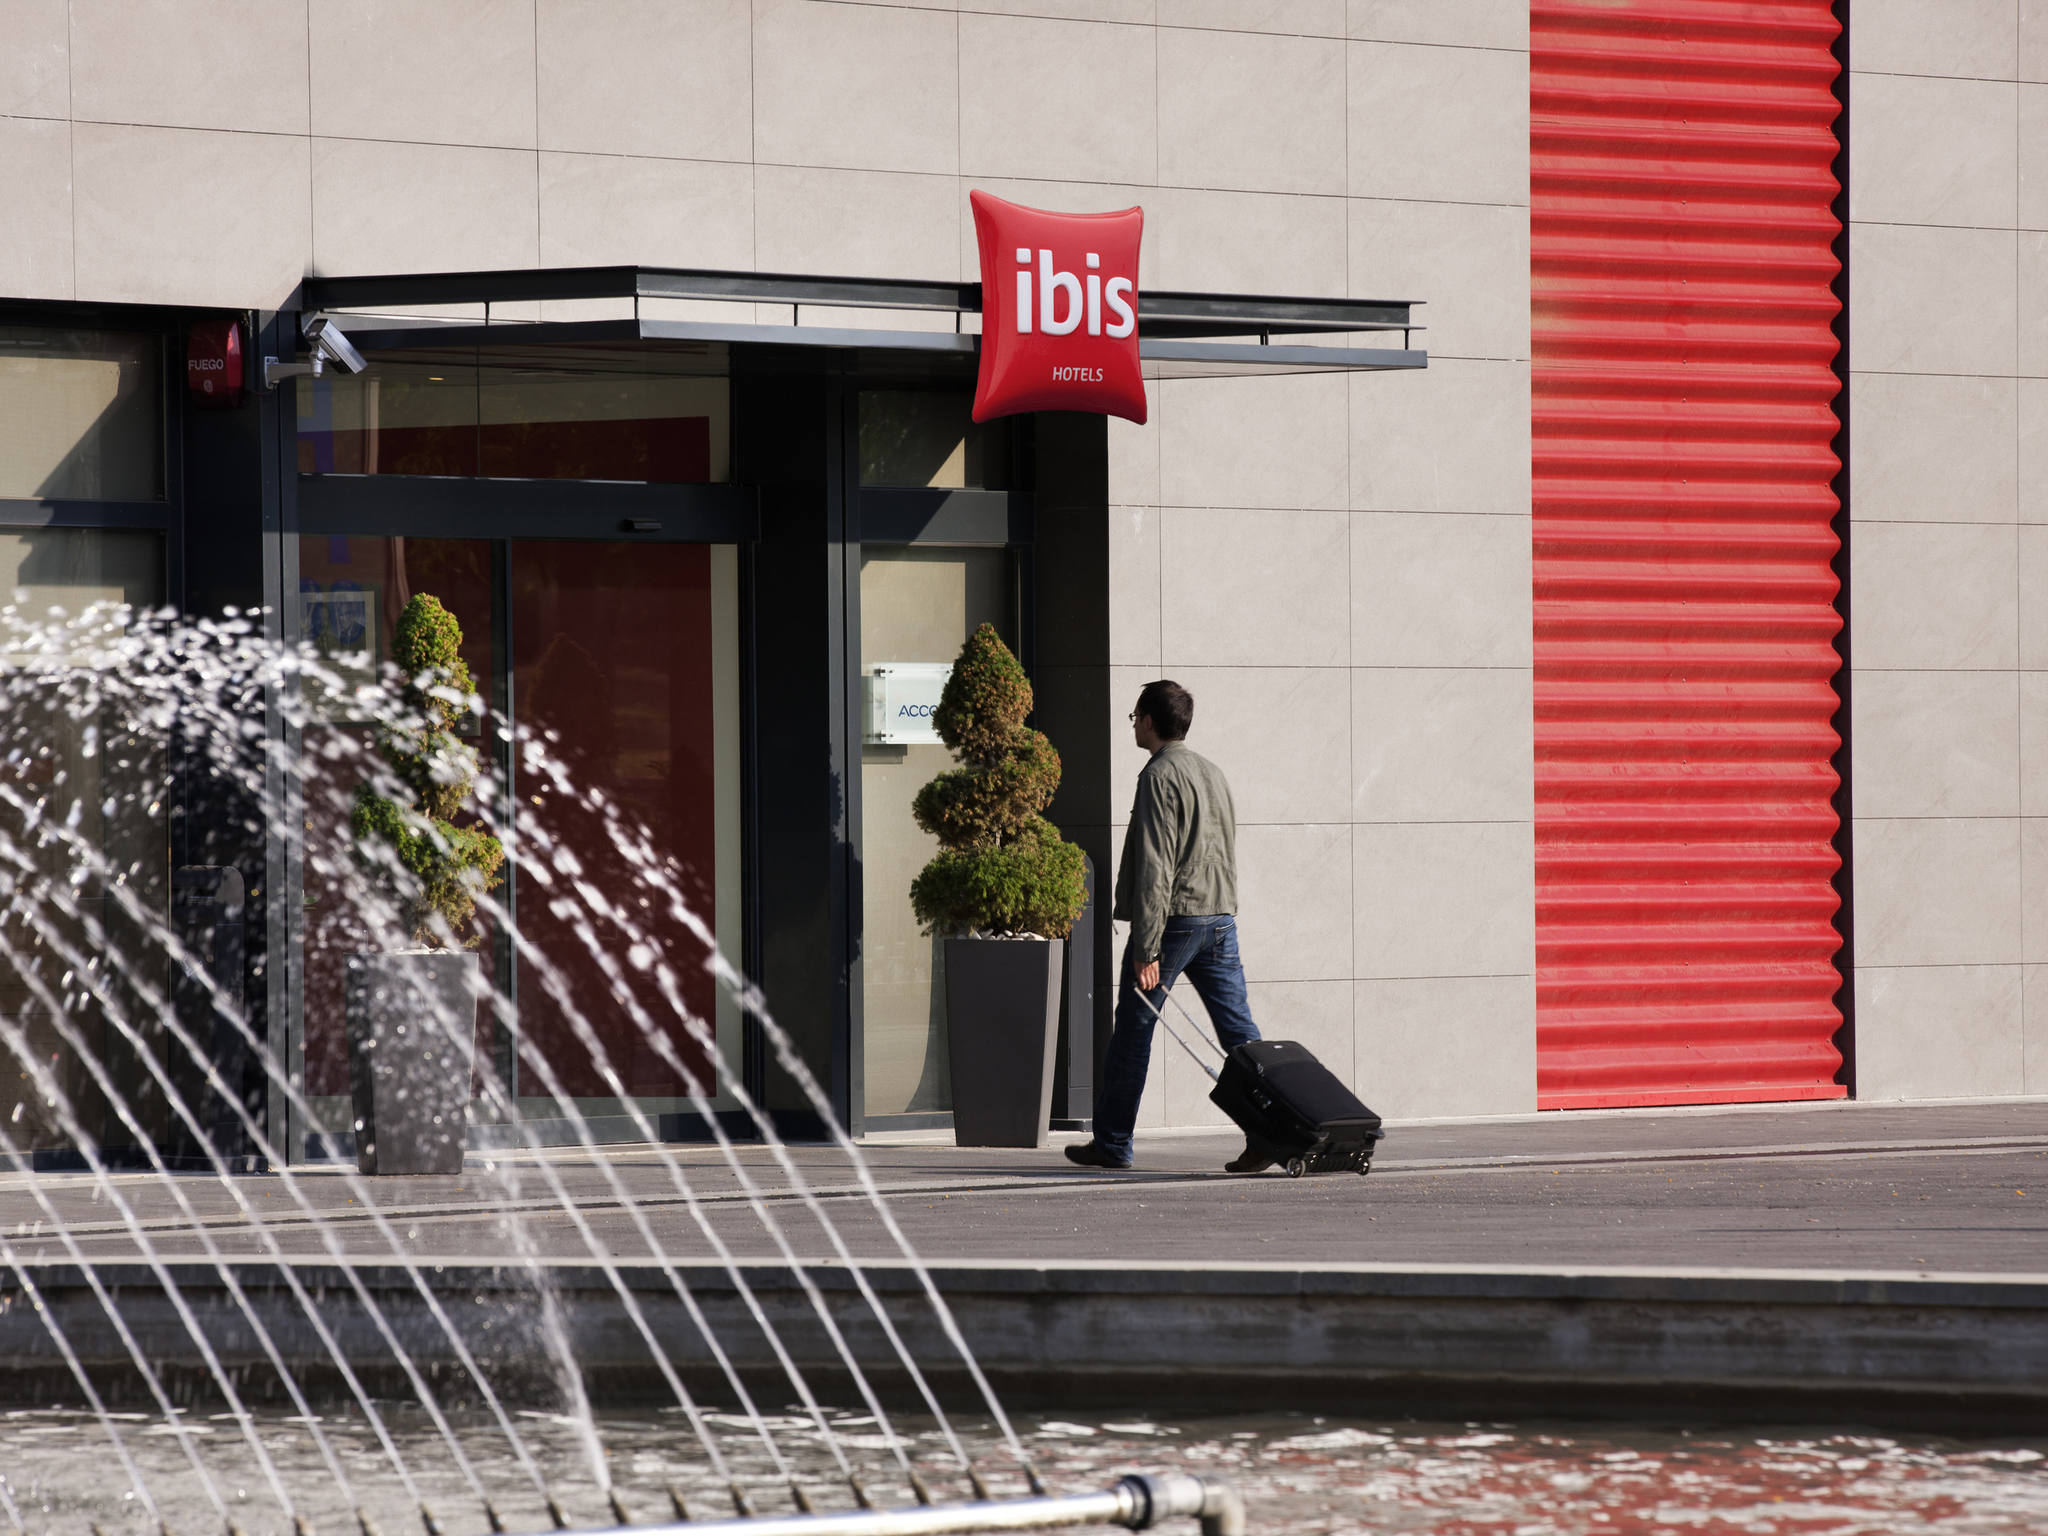 Hotel Sidorme Mollet Hotel In Ripollet Book Your Ibis Hotel In Ripollet Barcelona